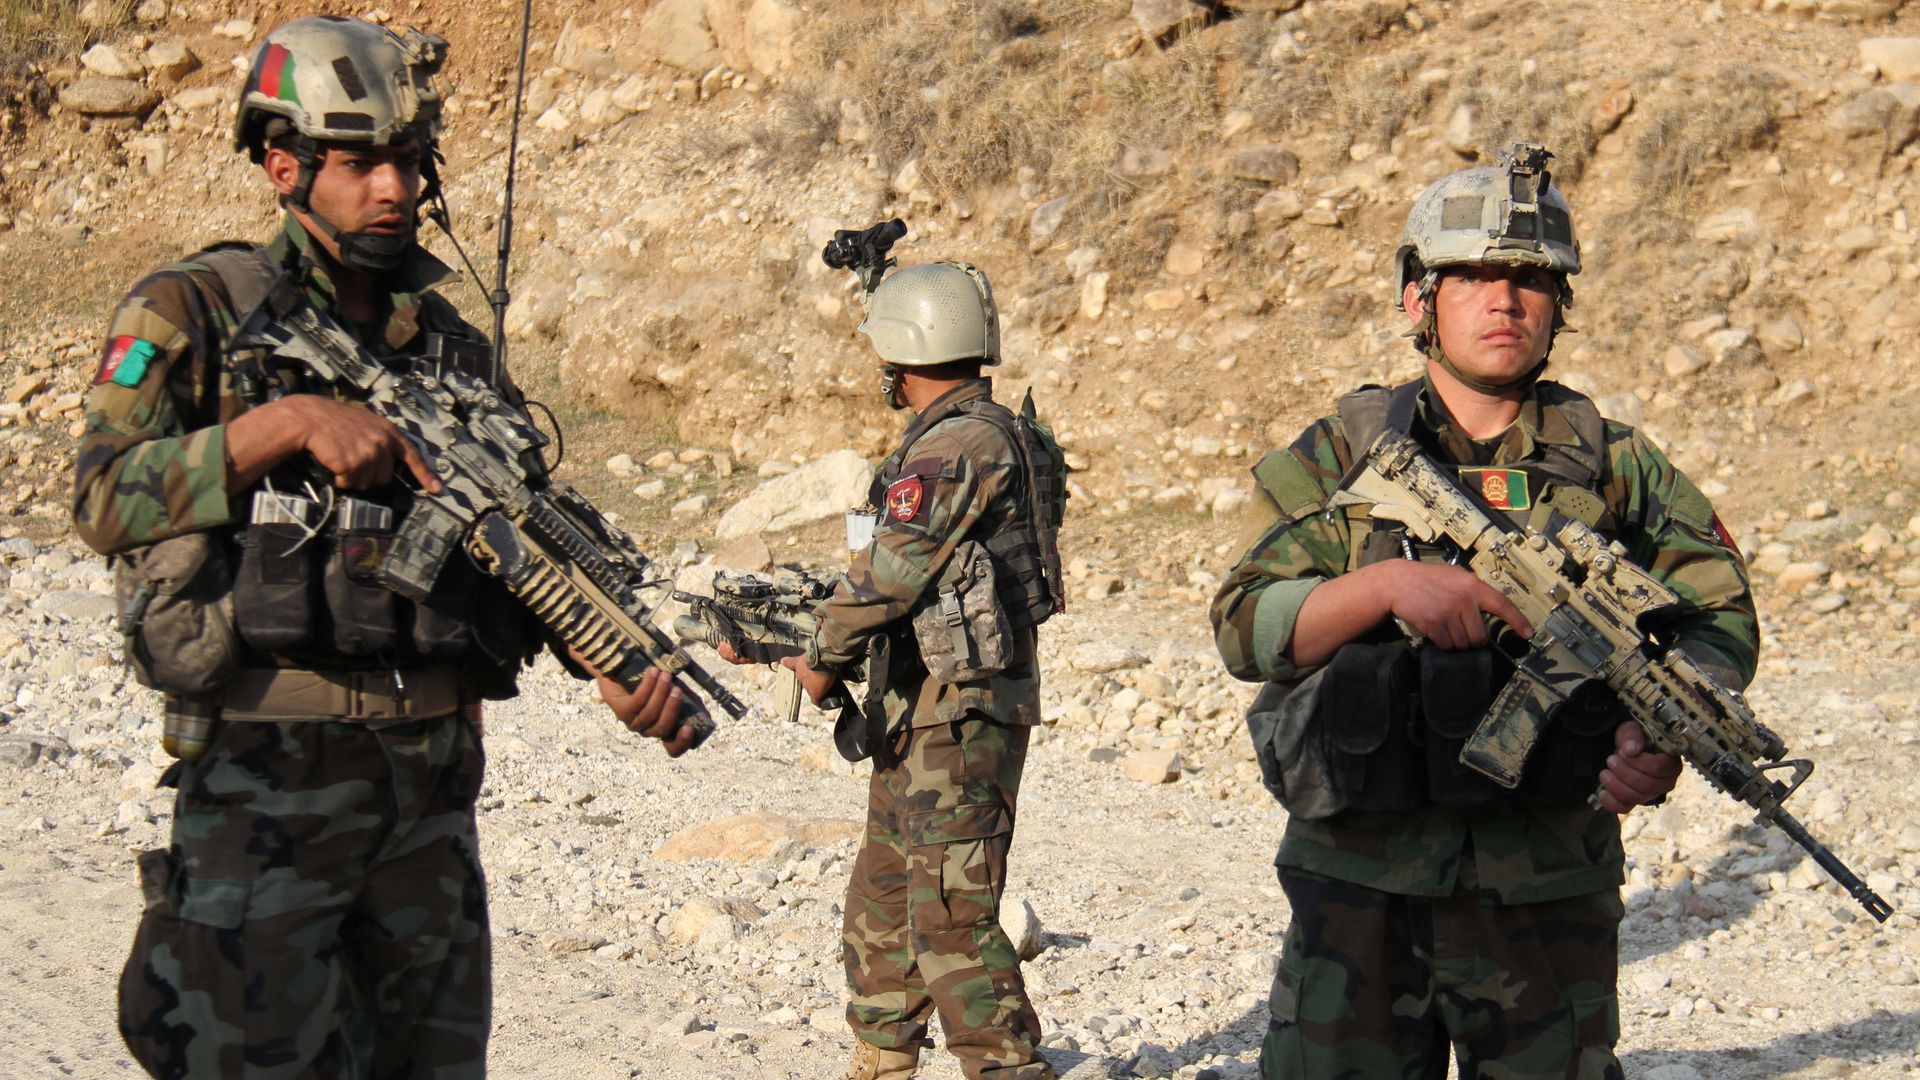 Afghan commandos forces take part in an operations against the Taliban.